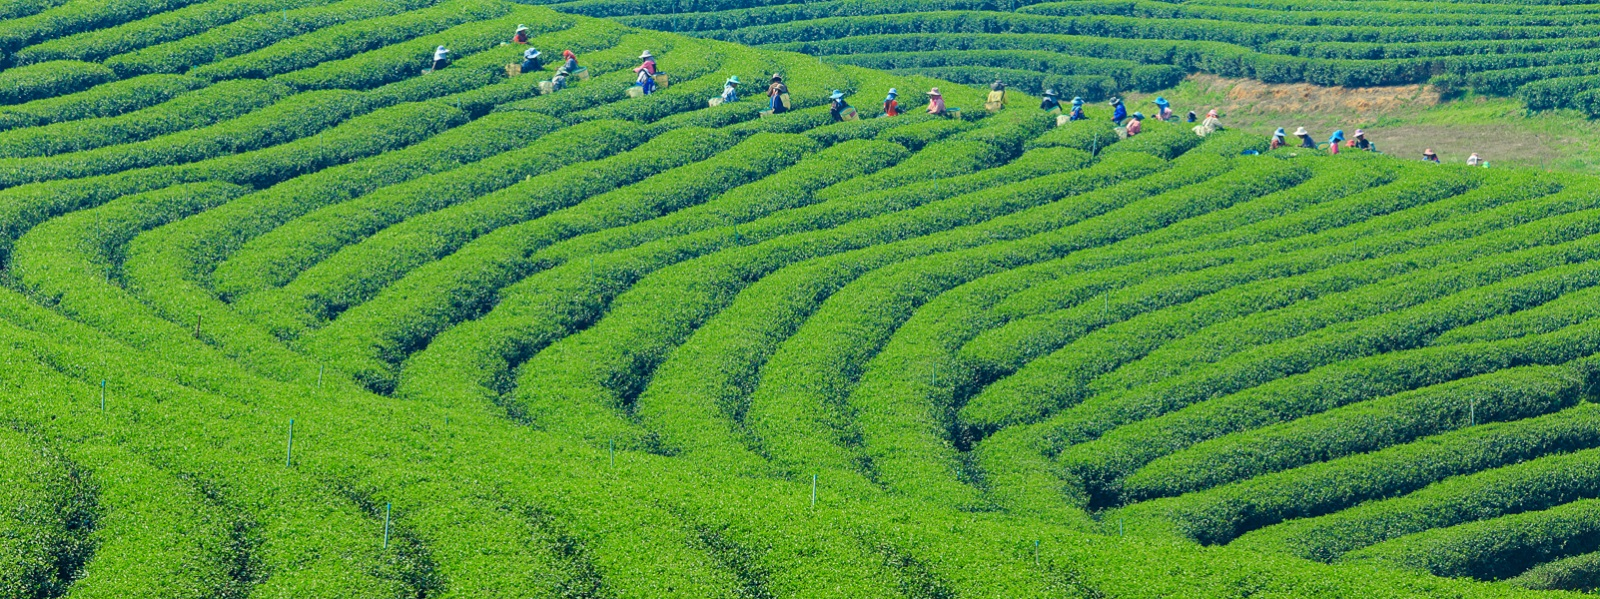 Wide view of a tea plantation